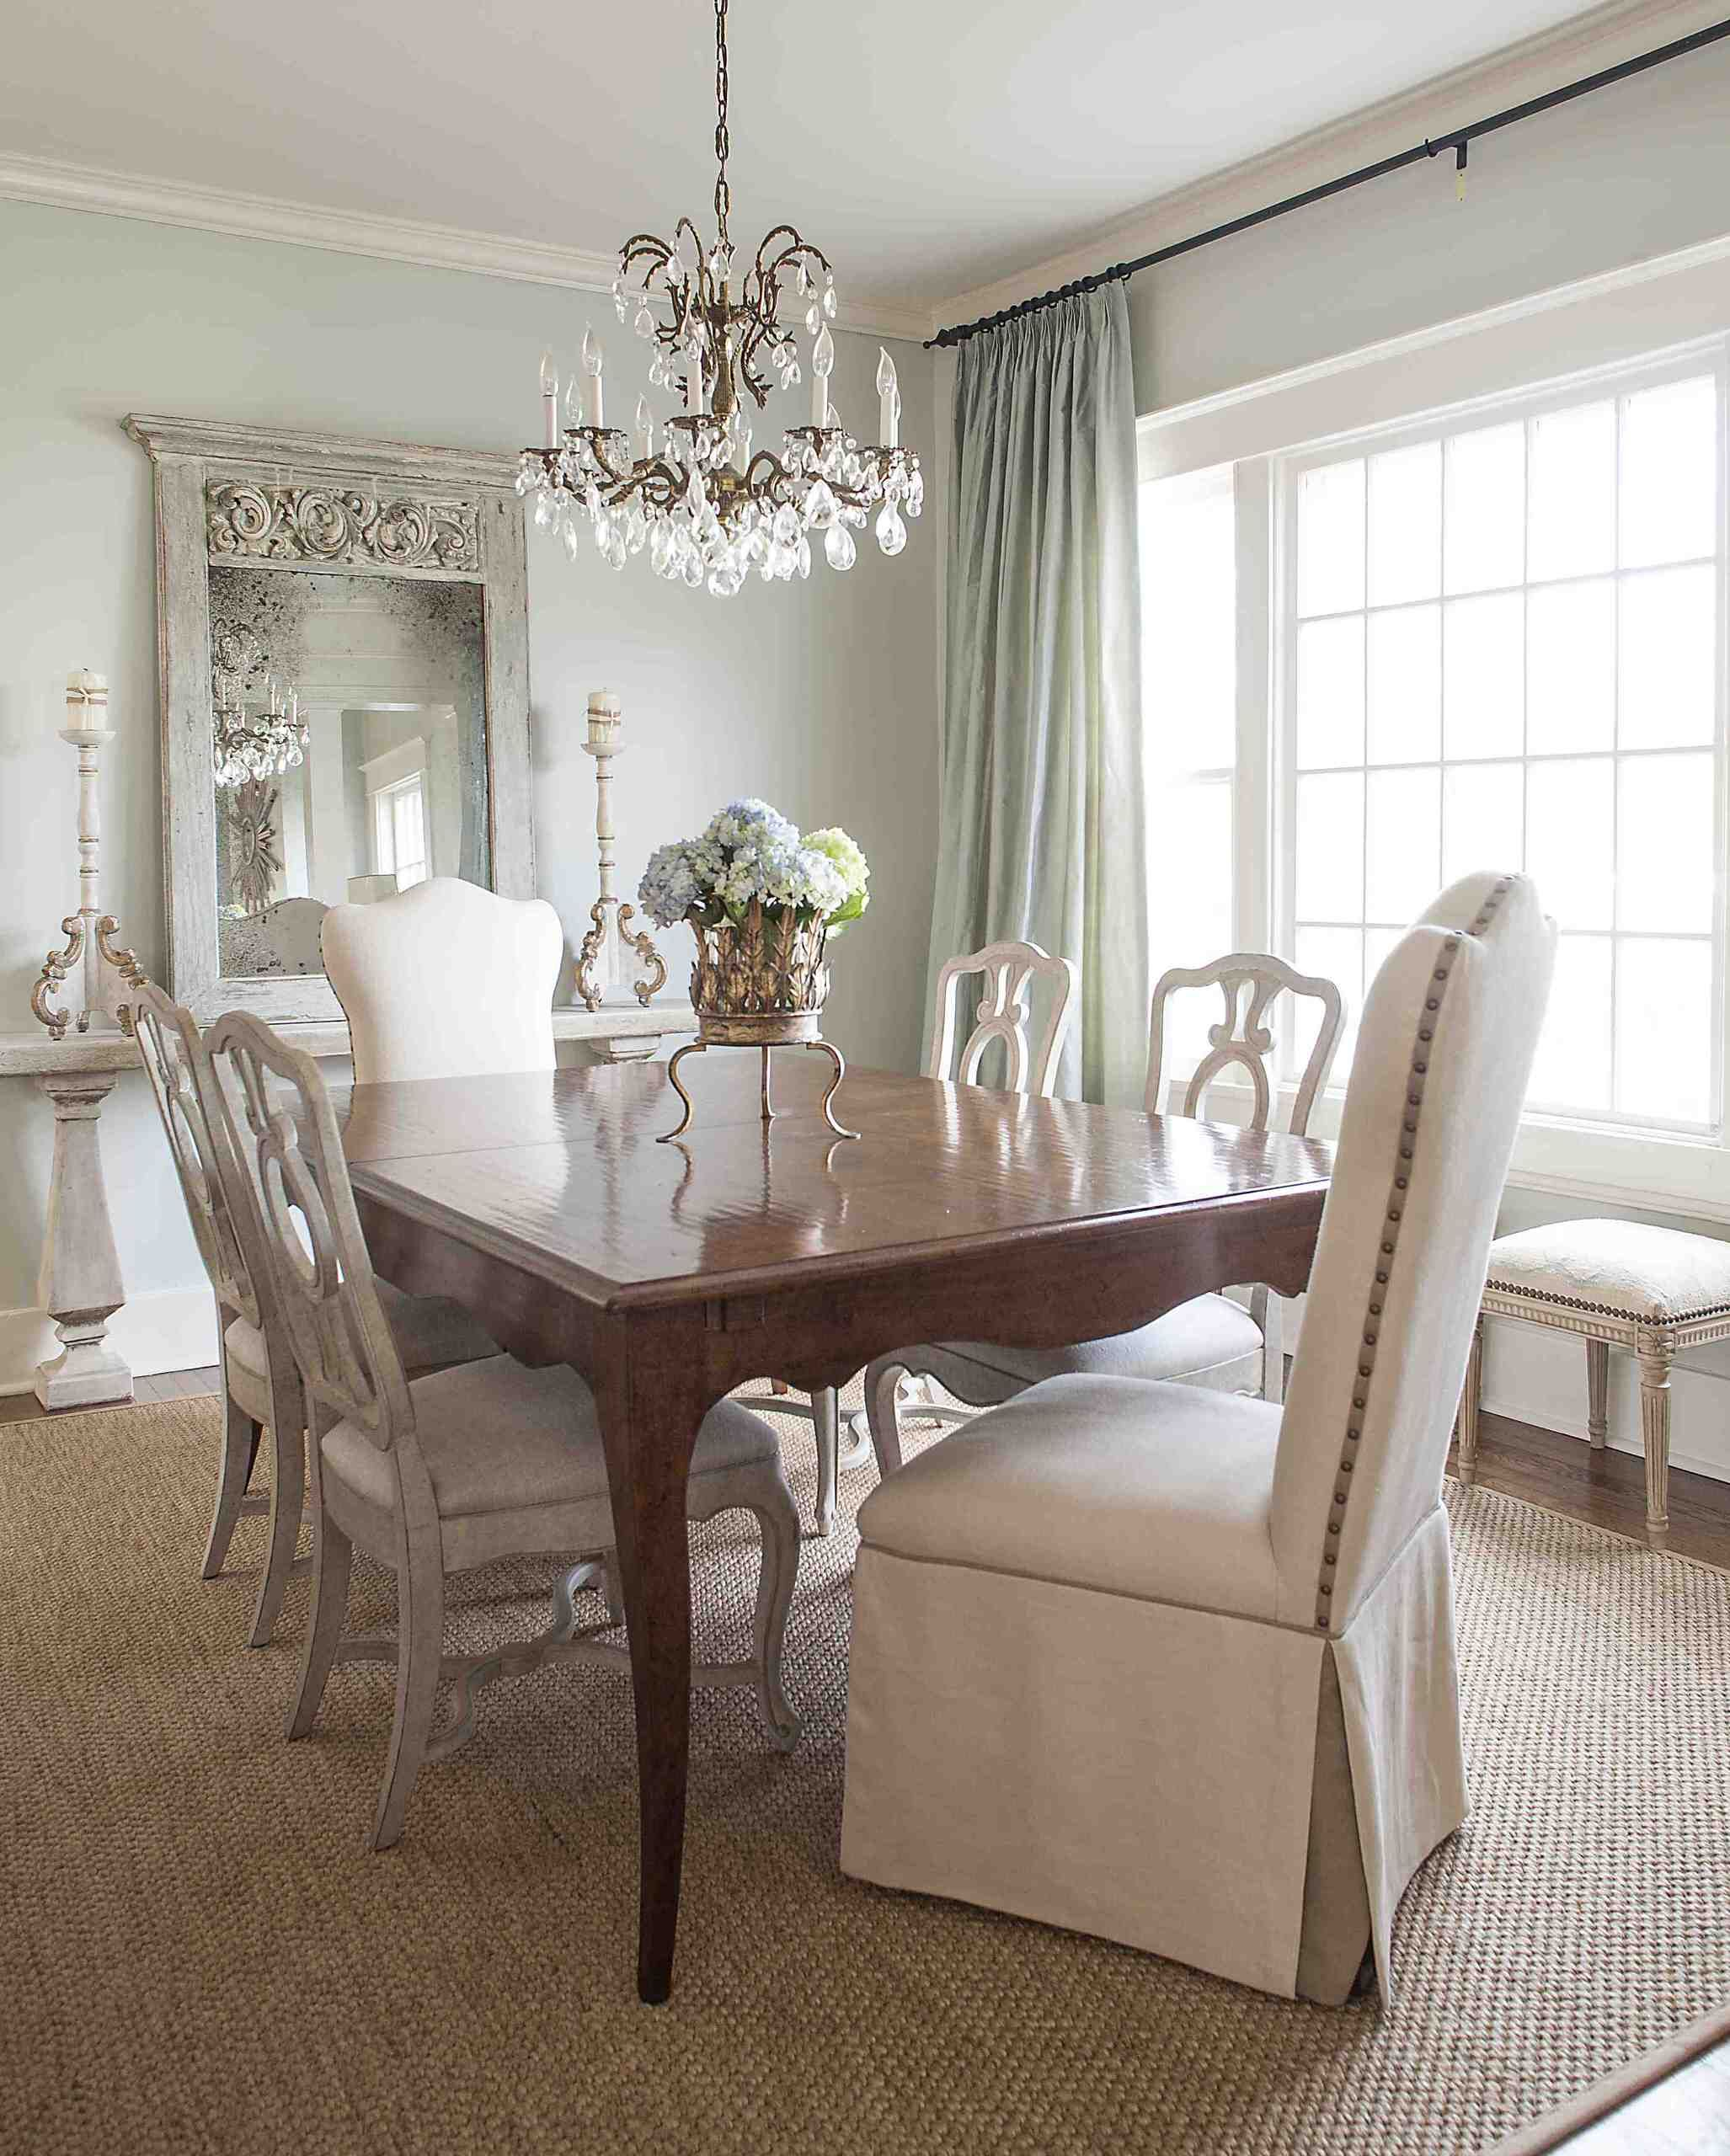 The Latest Shabby Chic Dining Chairs For Modern Dining Room Design Best Shabby Chic Dining Room Design Inspiration